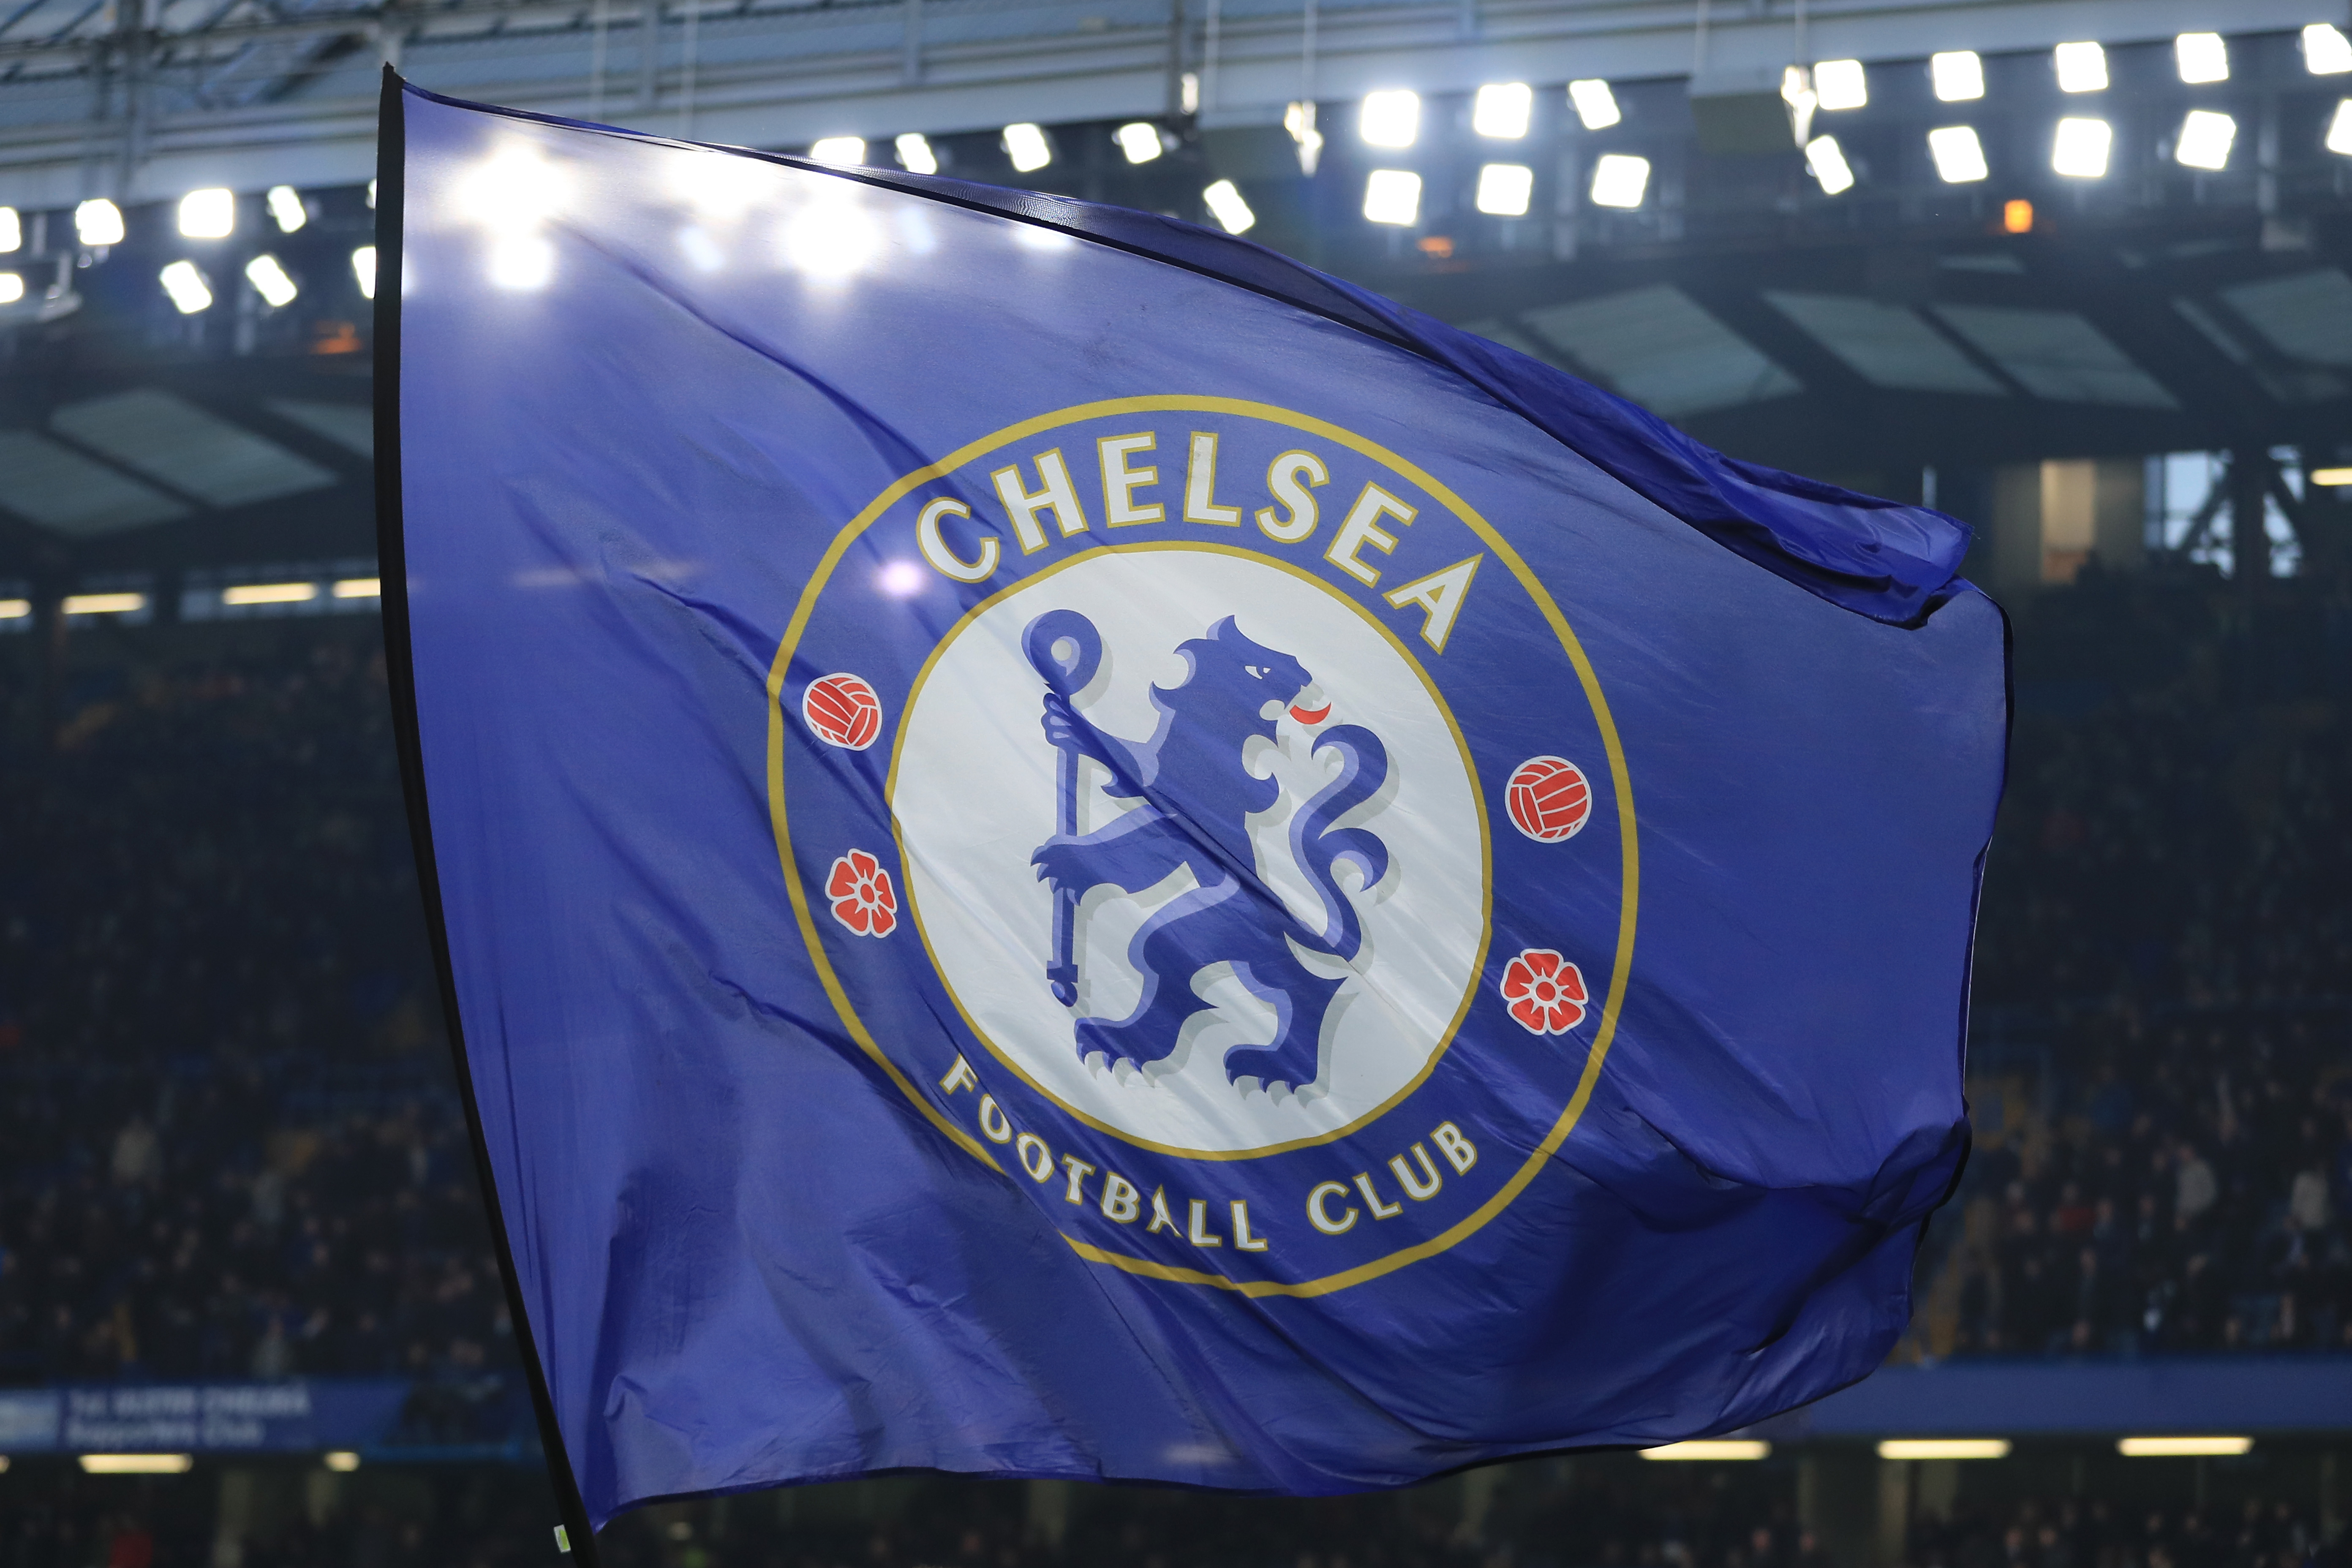 Chelsea S Ideal Champions League Draw Considers Travel As Well As Quality